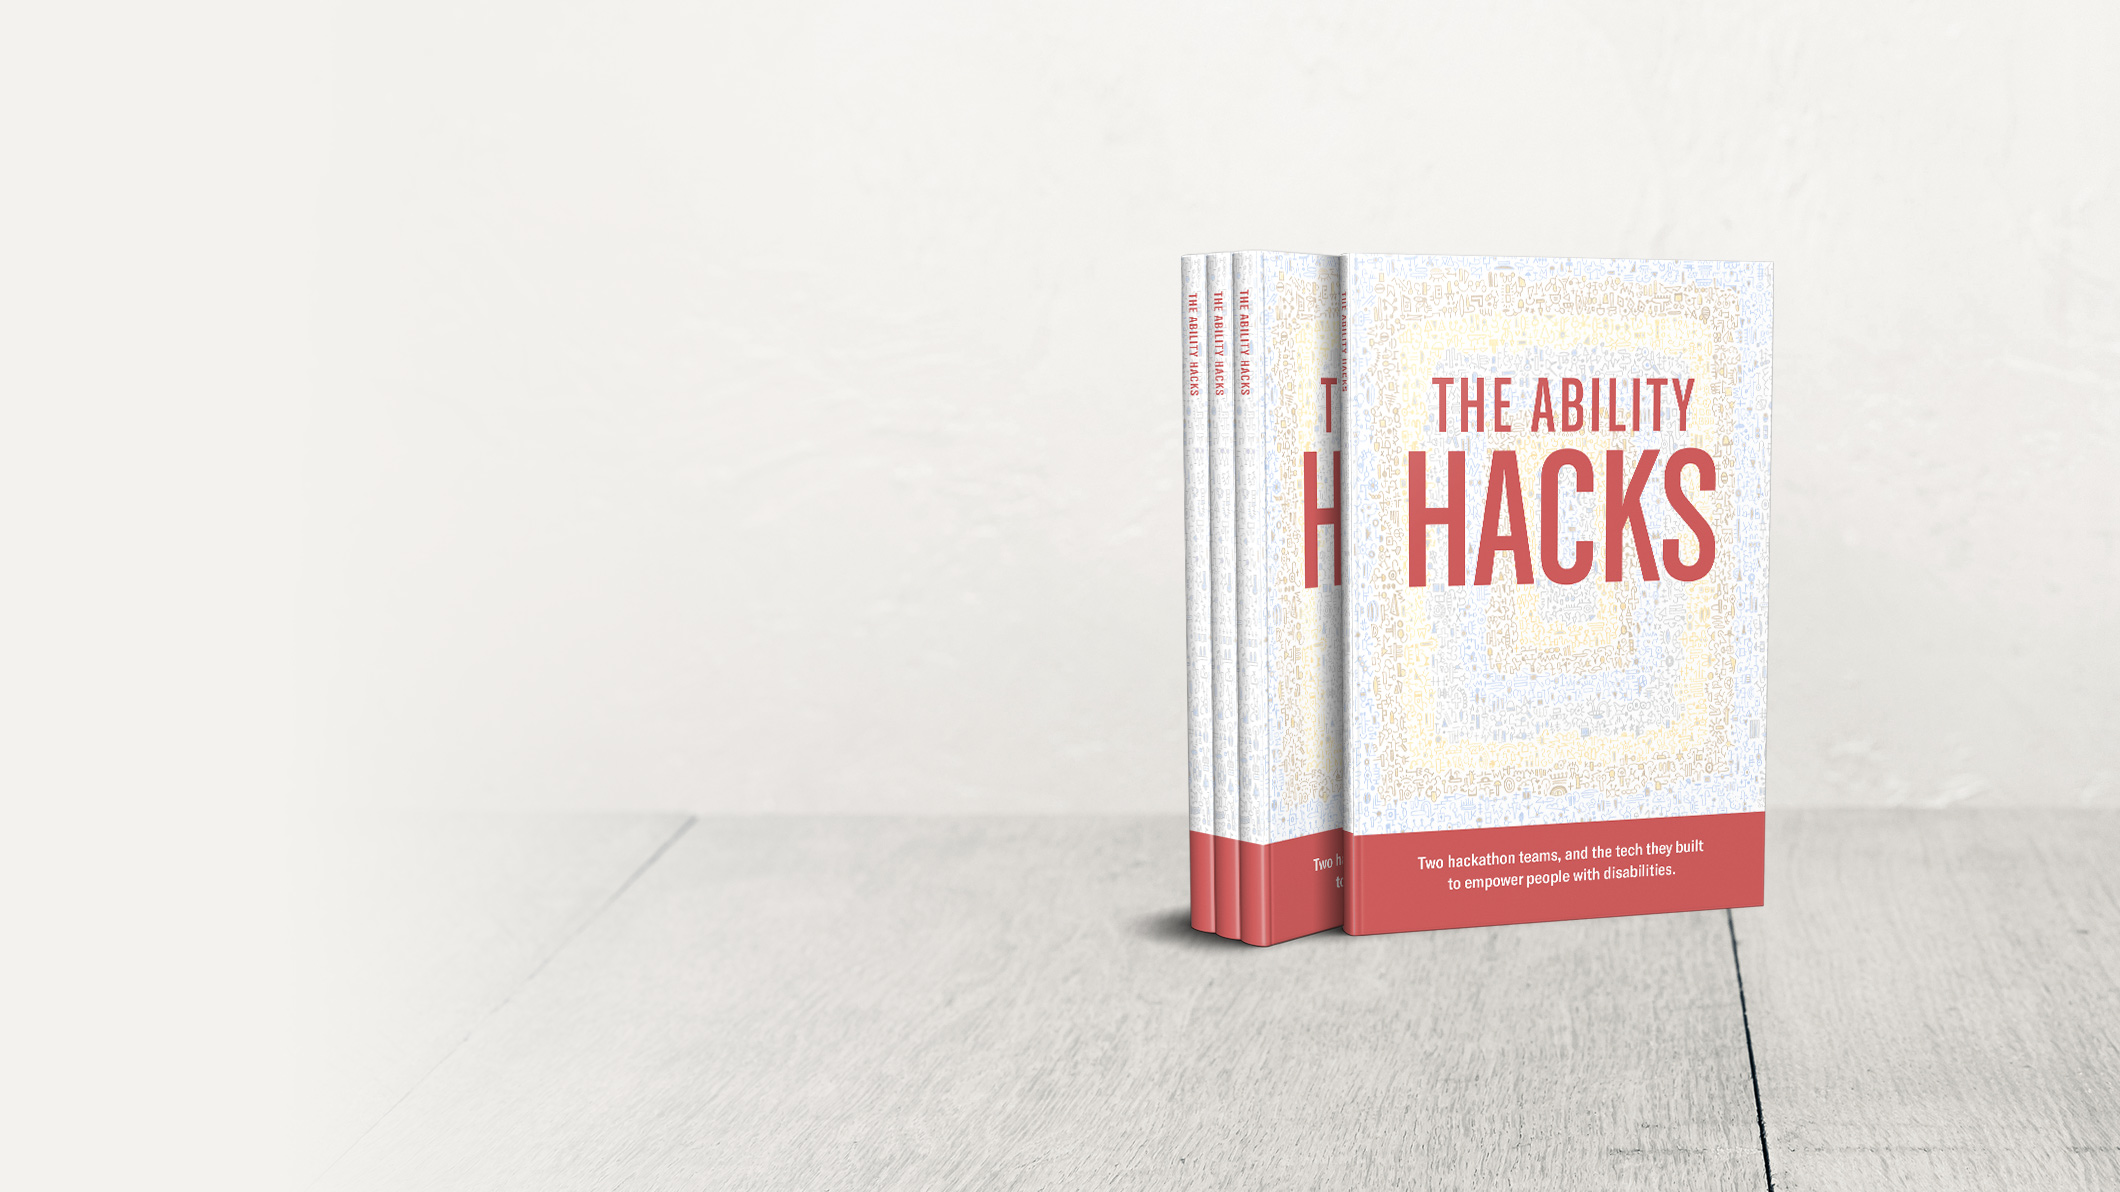 Stack of books: The Ability Hacks – Two hackathon teams, and the tech they built to empower people with disabilities